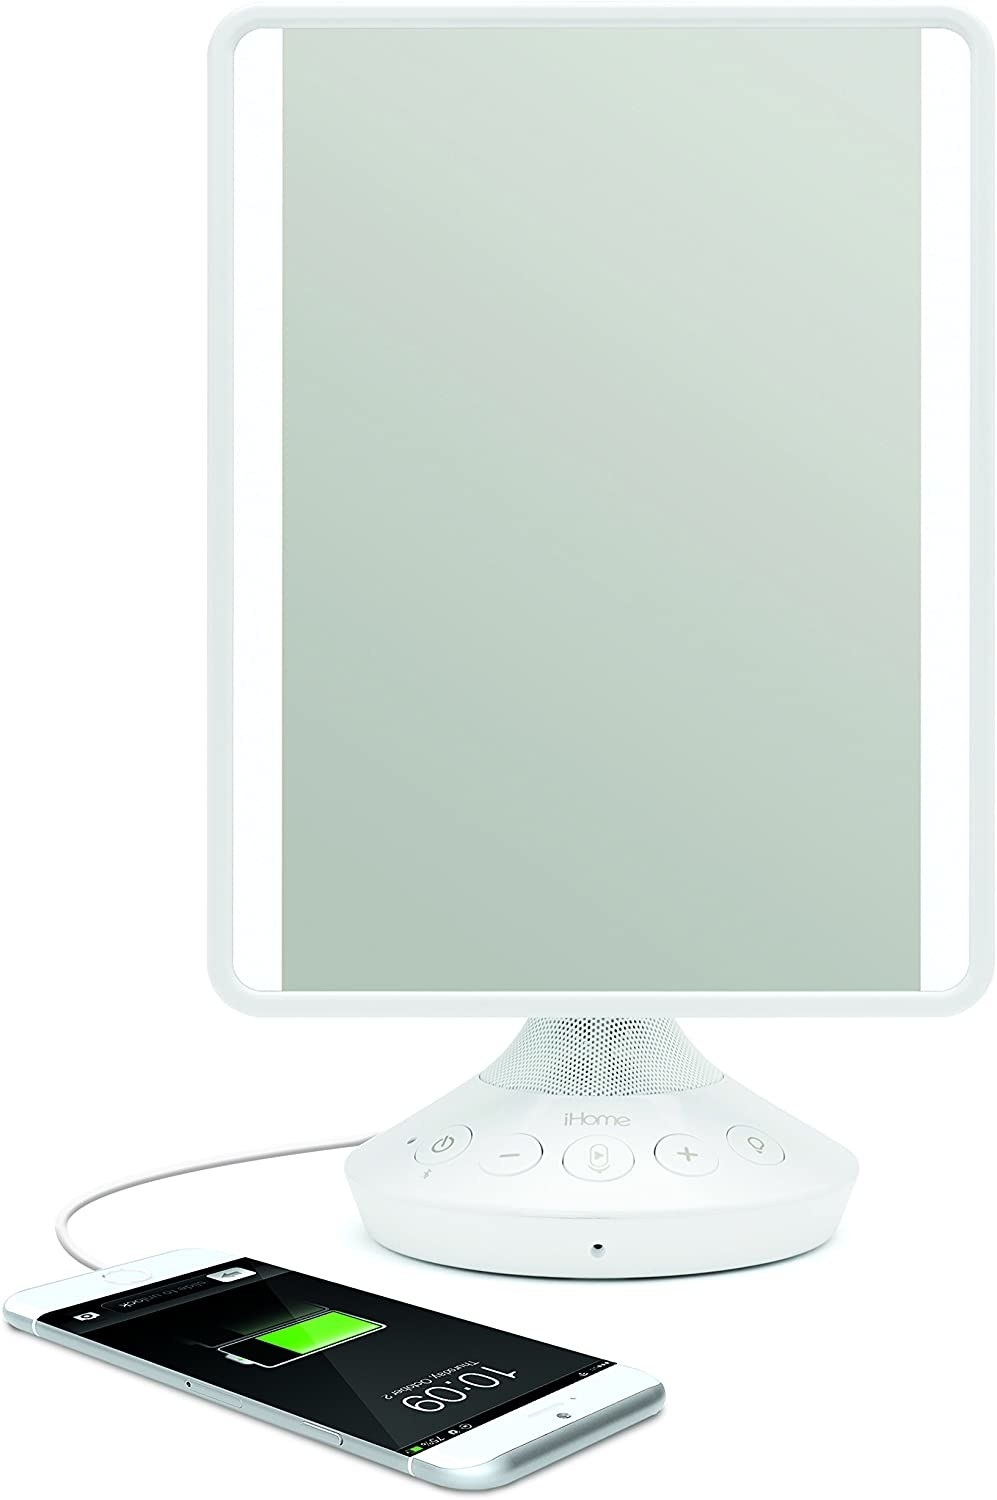 The mirror with a phone plugged in